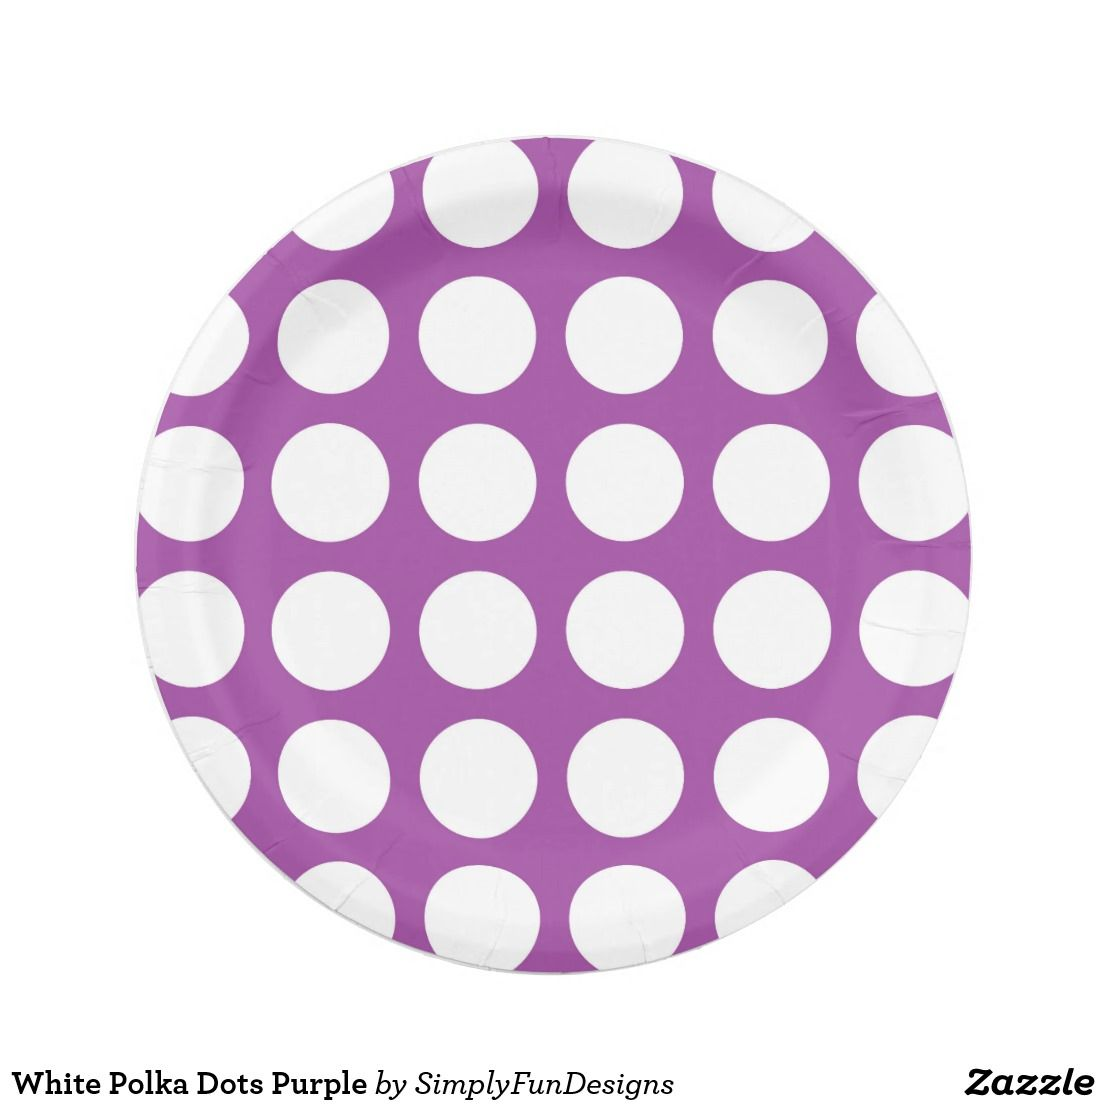 White Polka Dots Purple Paper Plate · Yellow PaperPink PaperBrown ...  sc 1 st  Pinterest & White Polka Dots Purple Paper Plate | Zazzle products designed by me ...